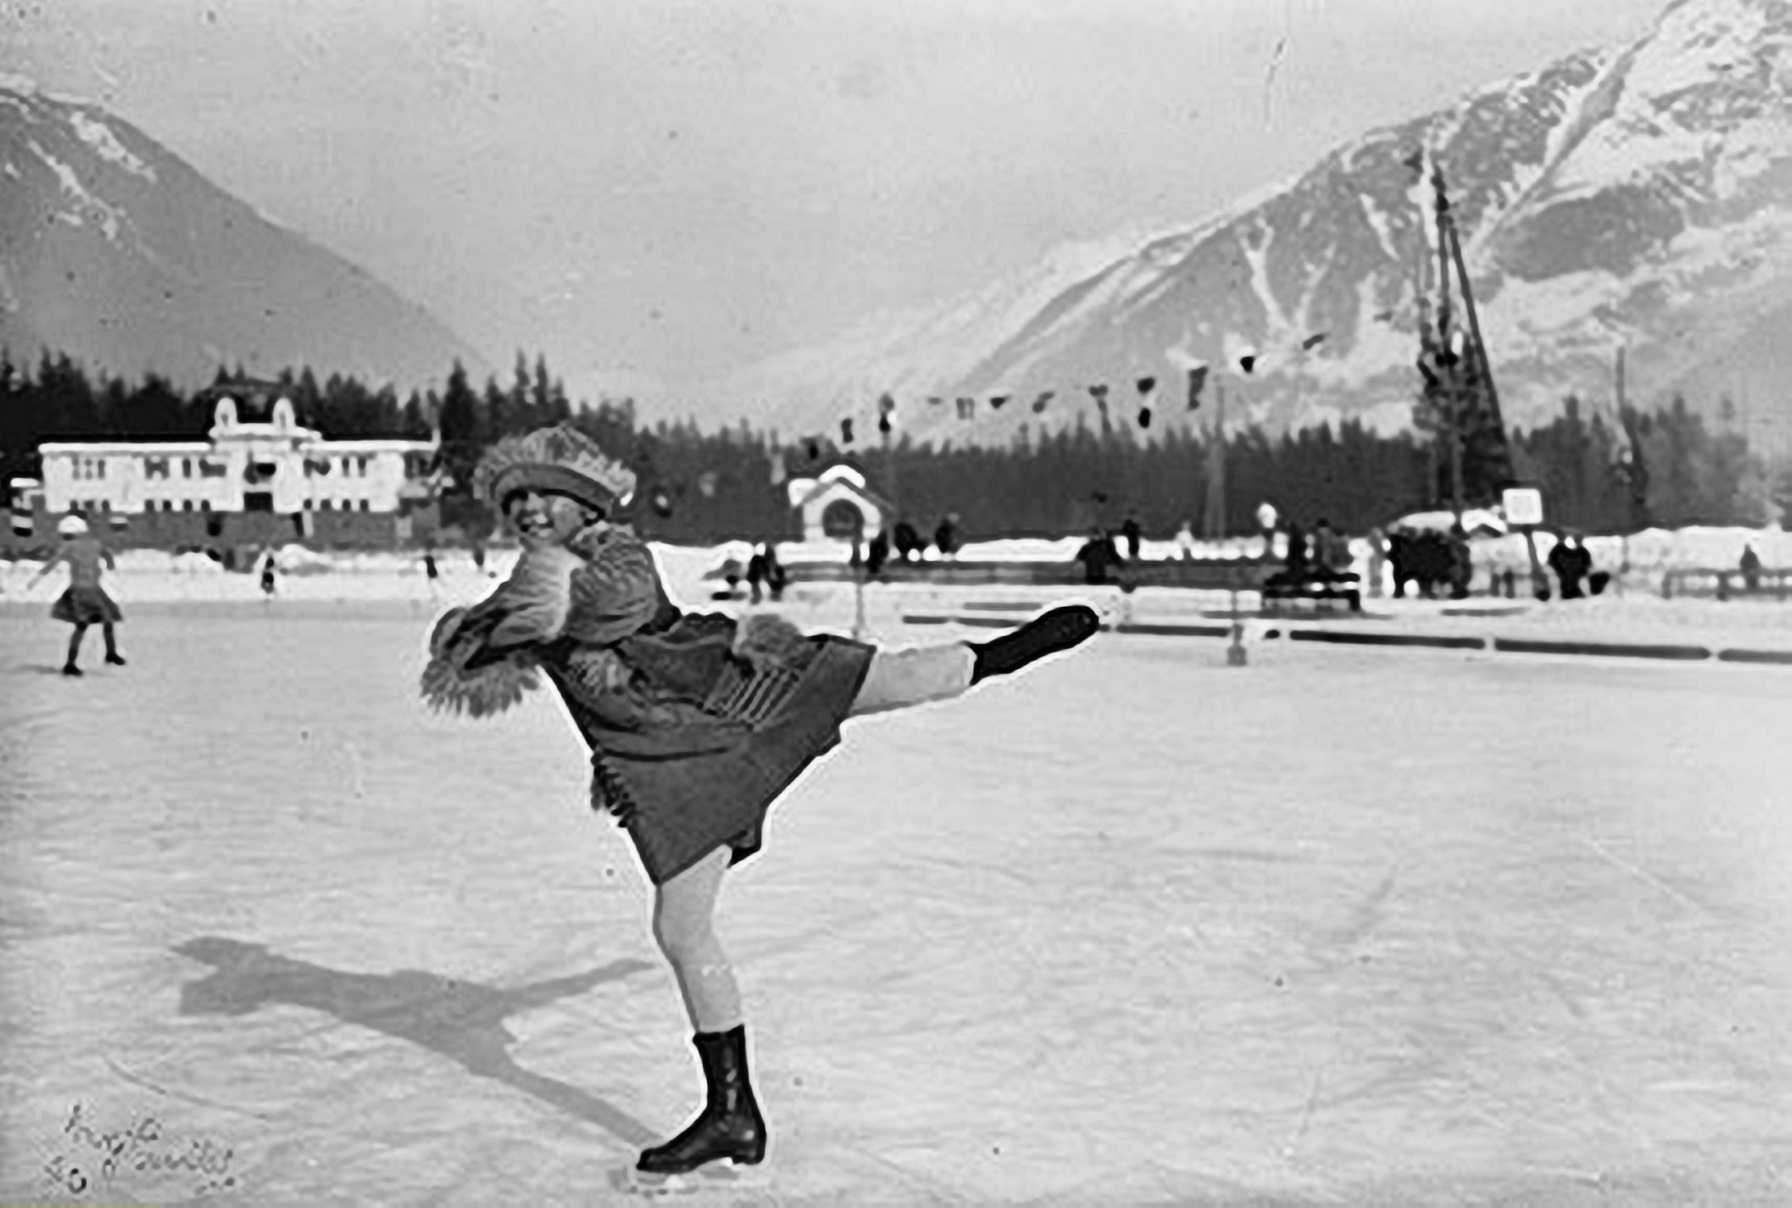 Athlete and figure skater Sonja Henie of Norway at the first Winter Olympics in Chamonix. (Photo by ullstein bild/ullstein bild via Getty Images)